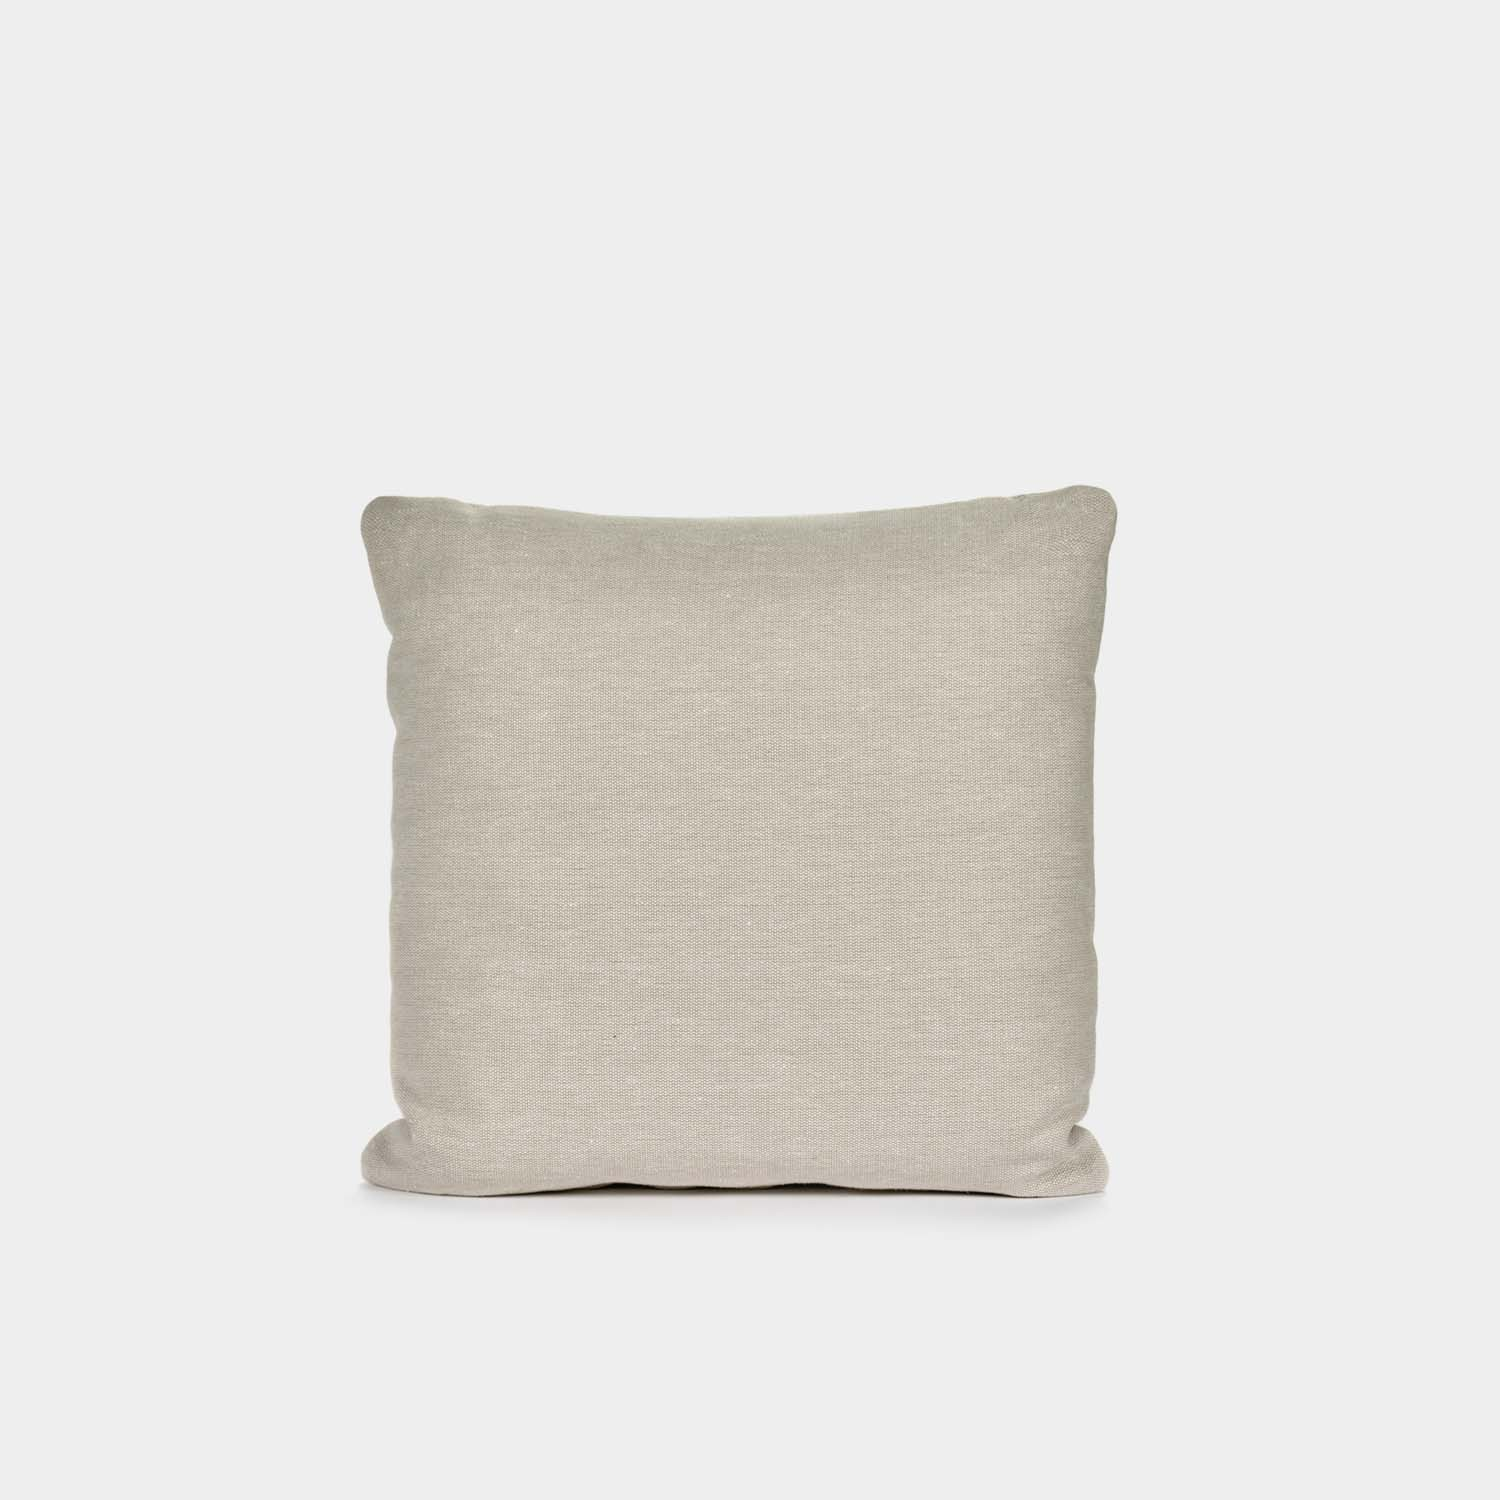 Decorative Cushion, Square, Ivory Cotton